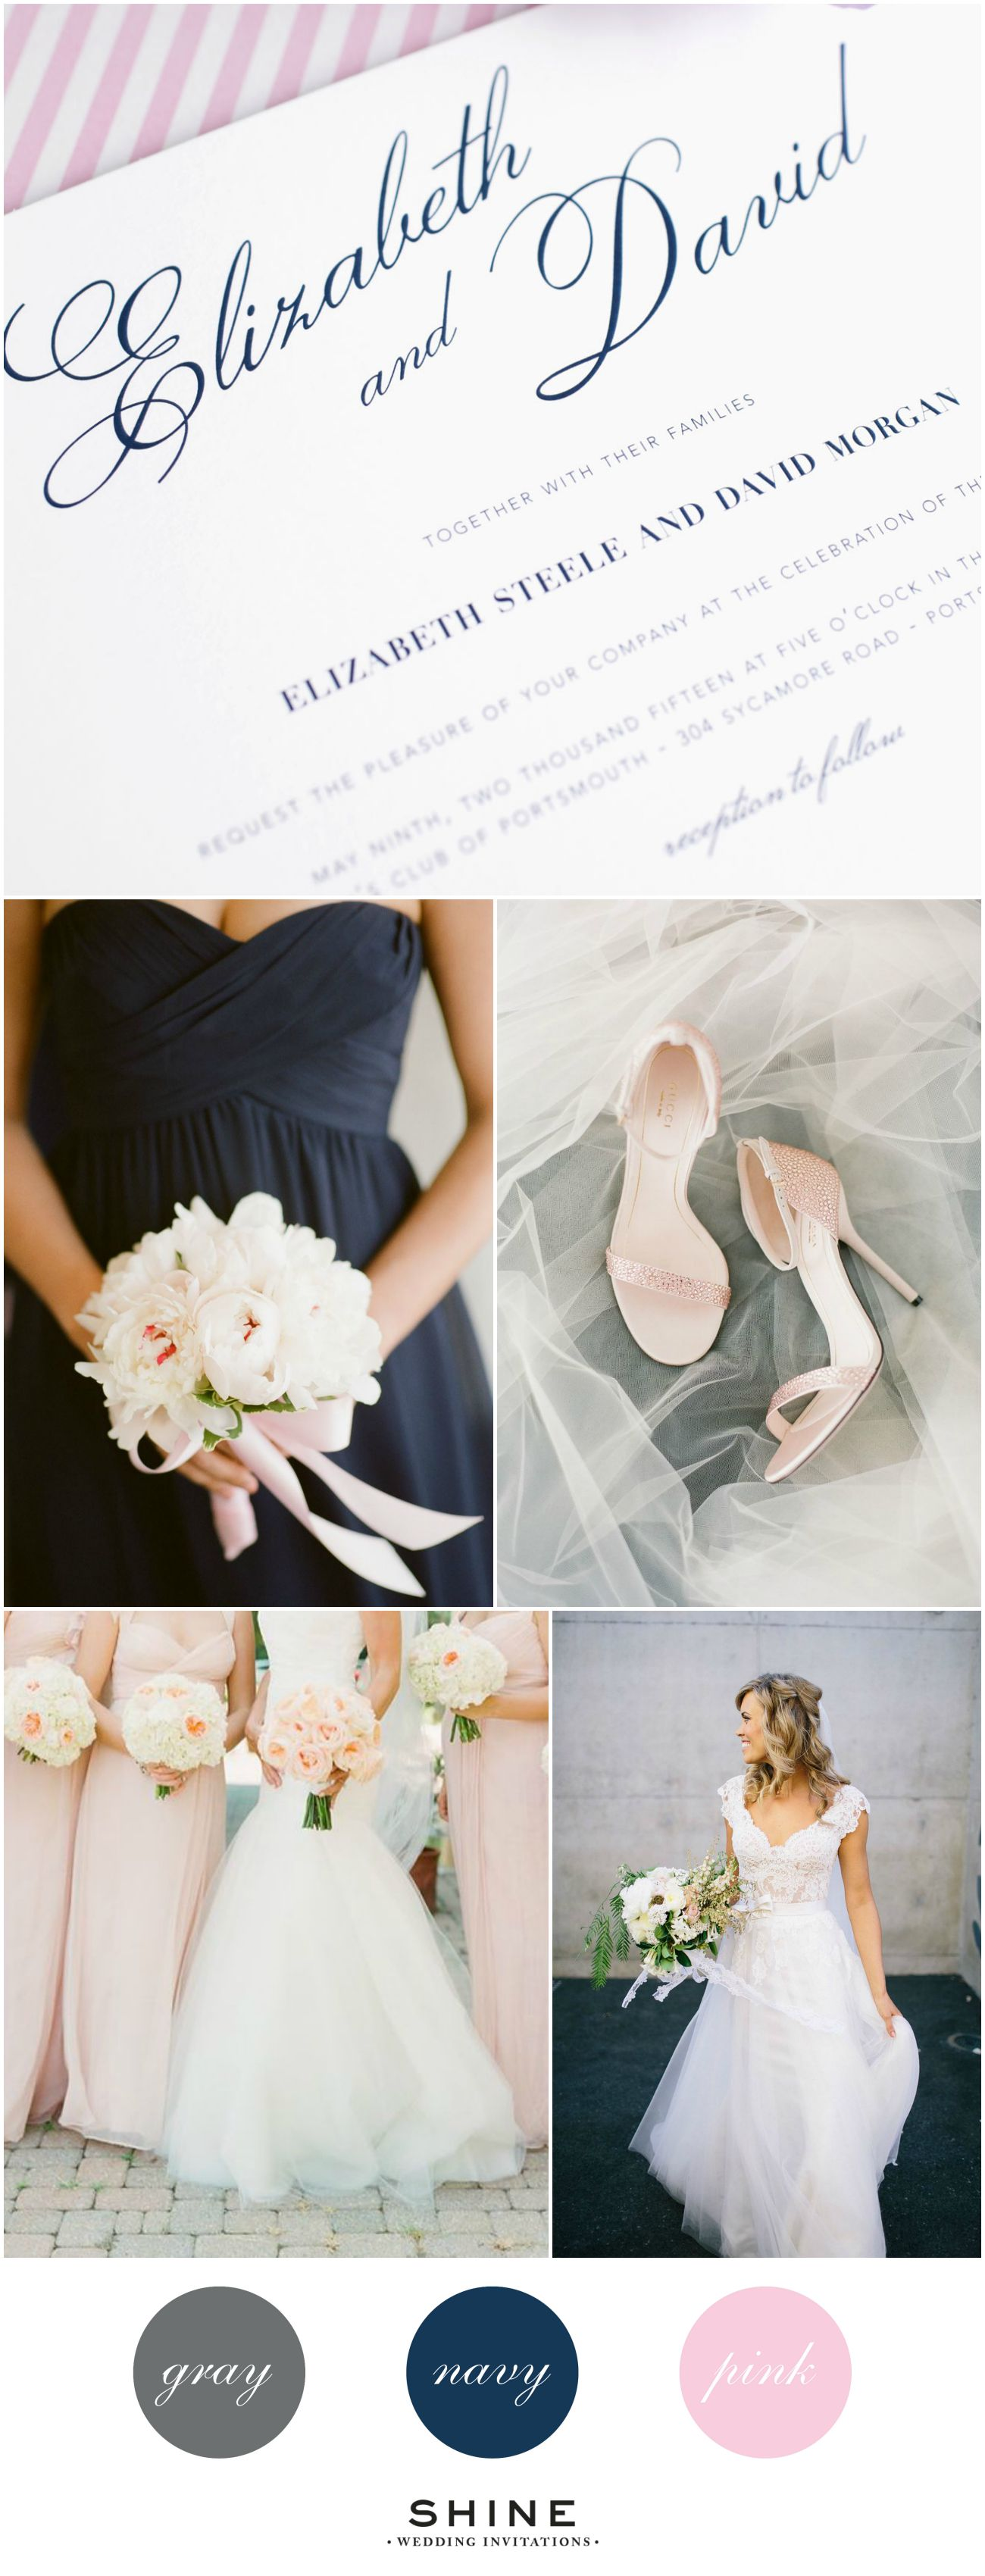 Gray, Navy, and Pink Vintage Wedding Inspiration